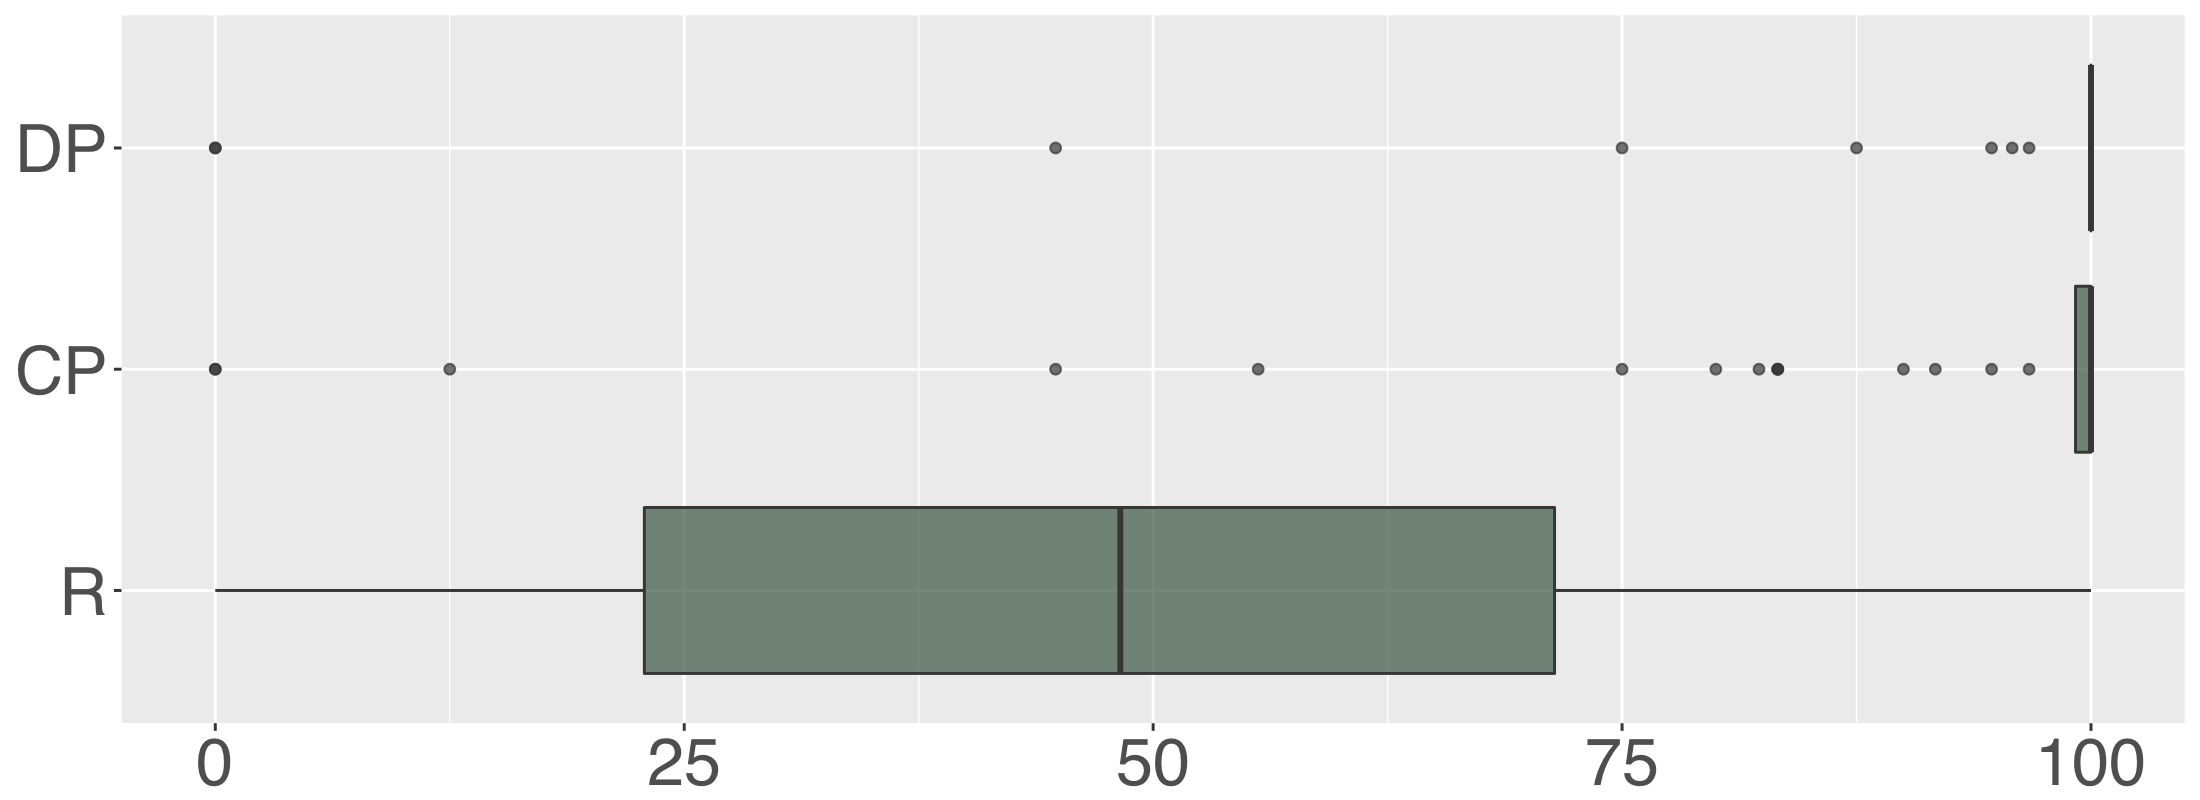 Detection Precision (DP), Classification Precision (CP), and Recall (R) of Humans.